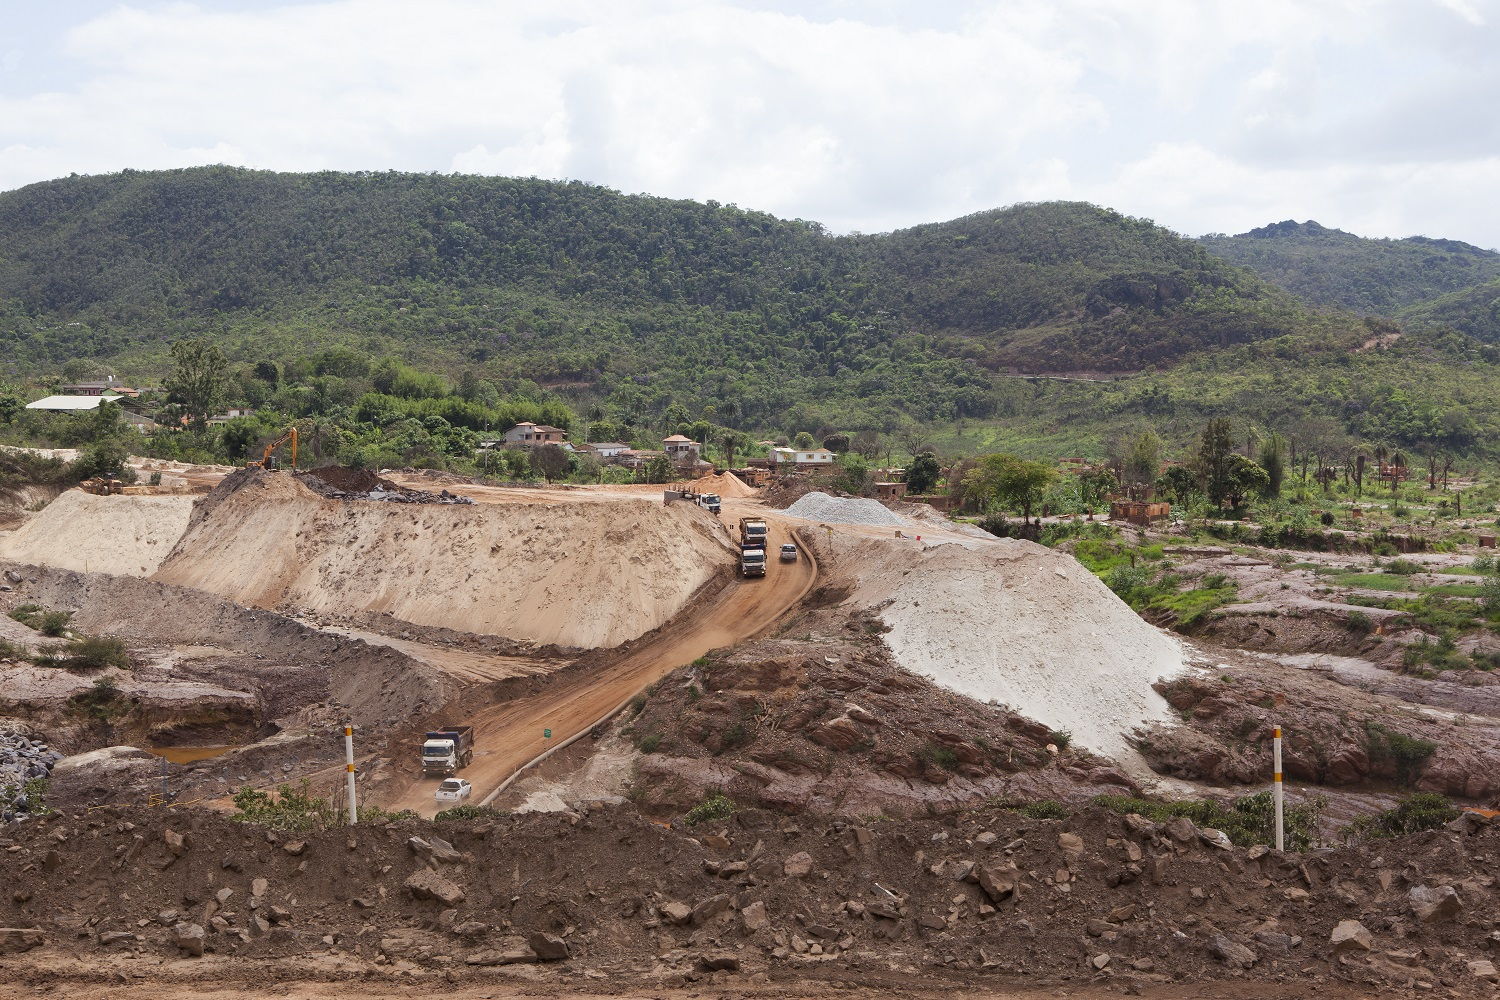 'I see that people are sad': Samarco report summary